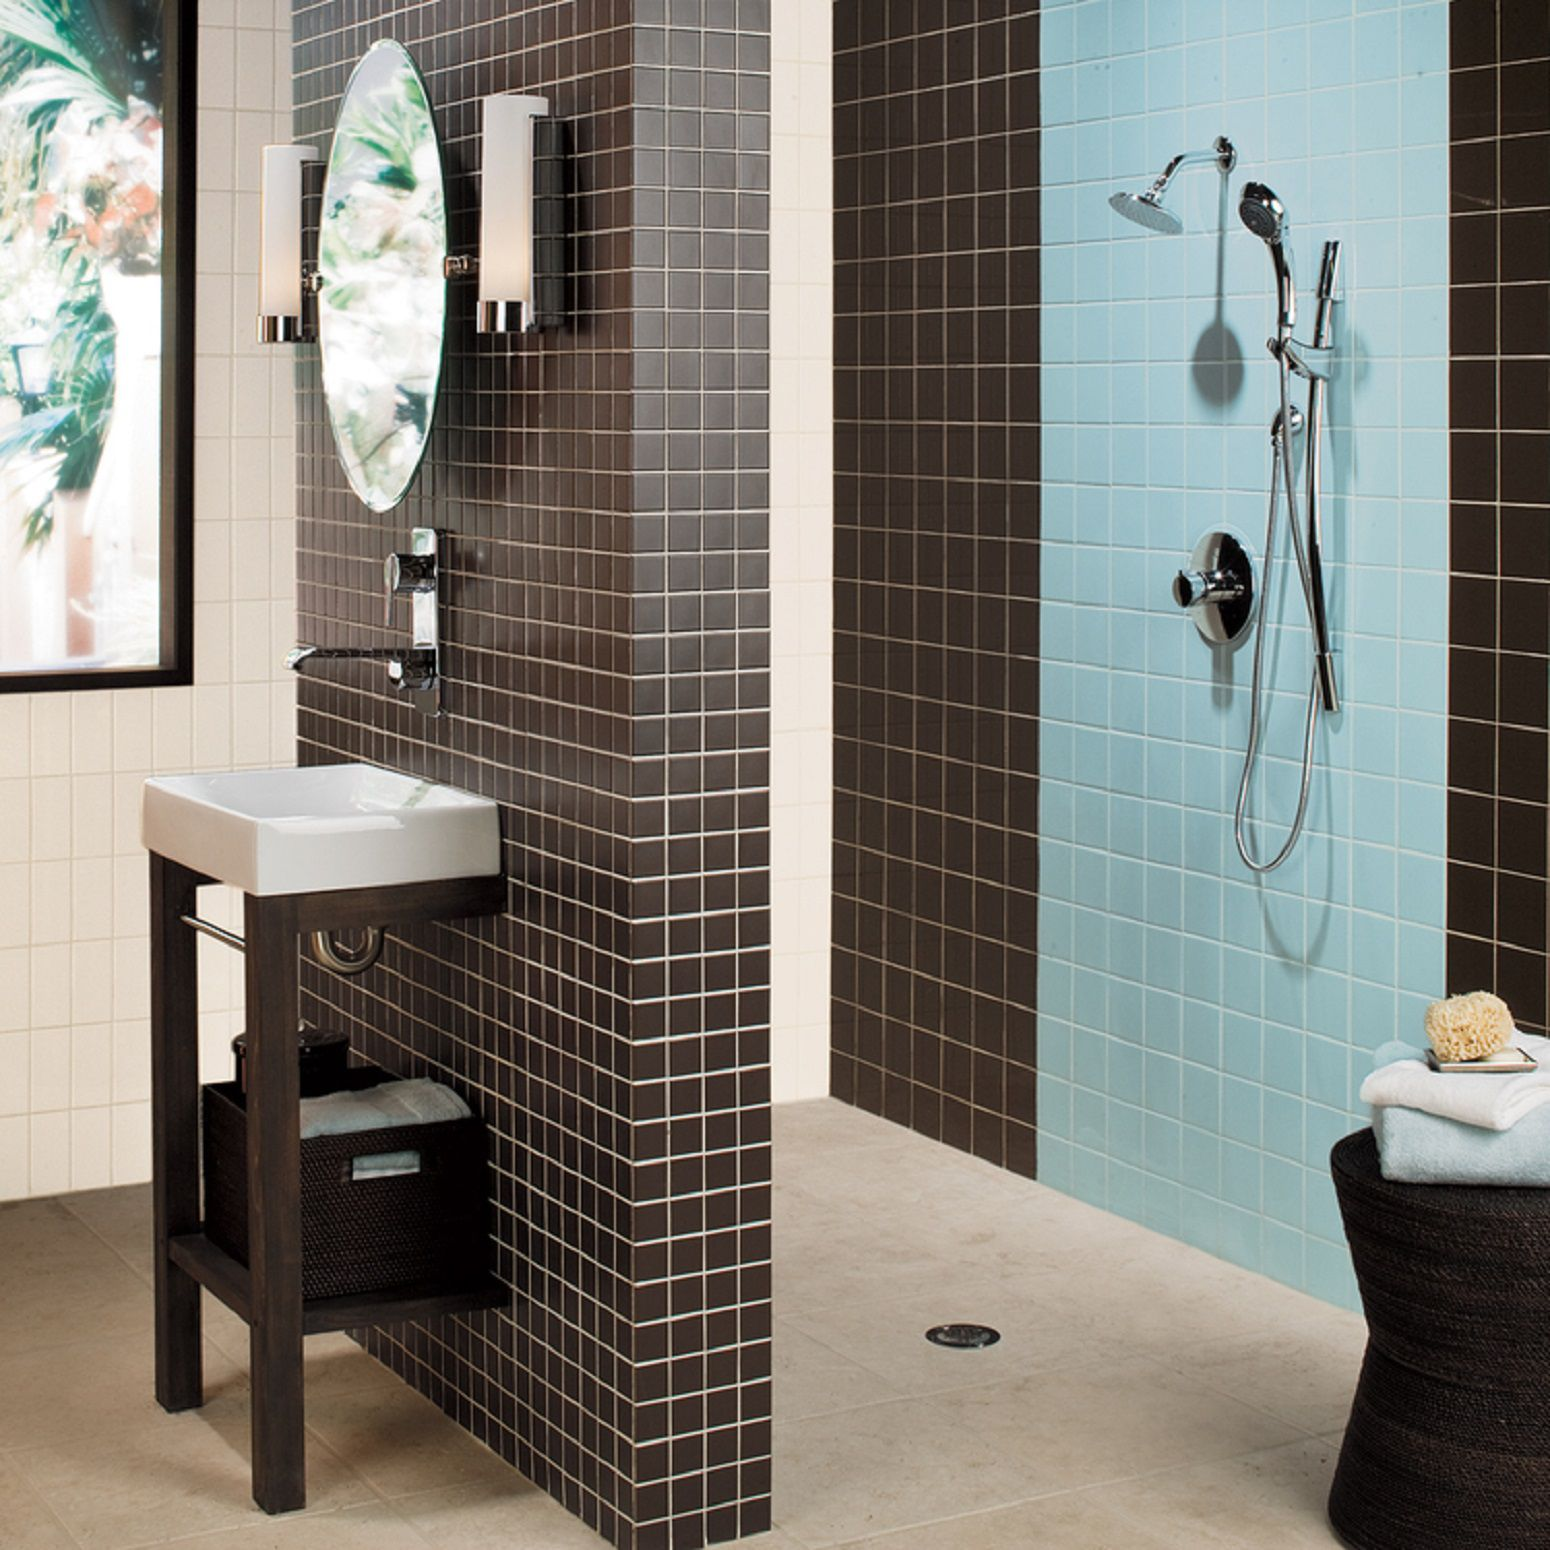 The Best Tile Ideas For Small Bathrooms - Bathroom ceramic tile floor